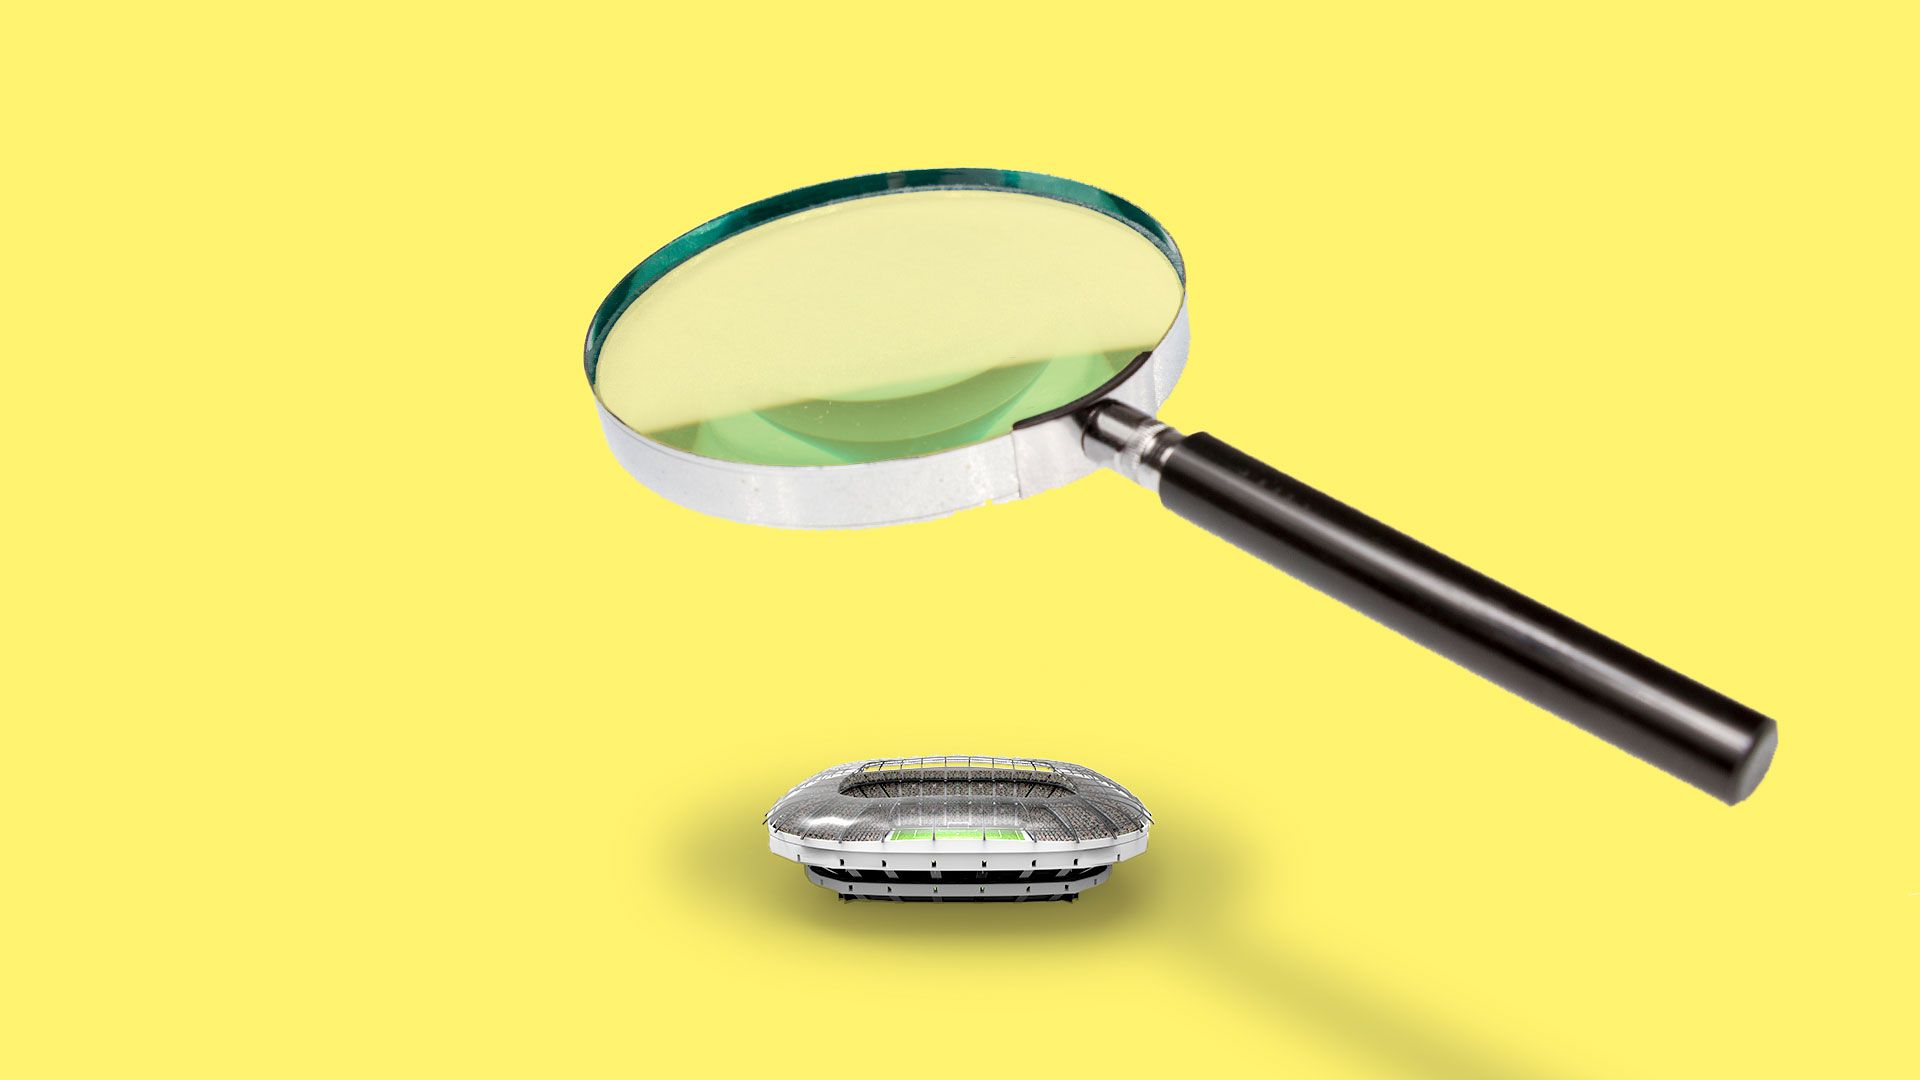 Illustration of a small stadium being observed under a magnifying glass.